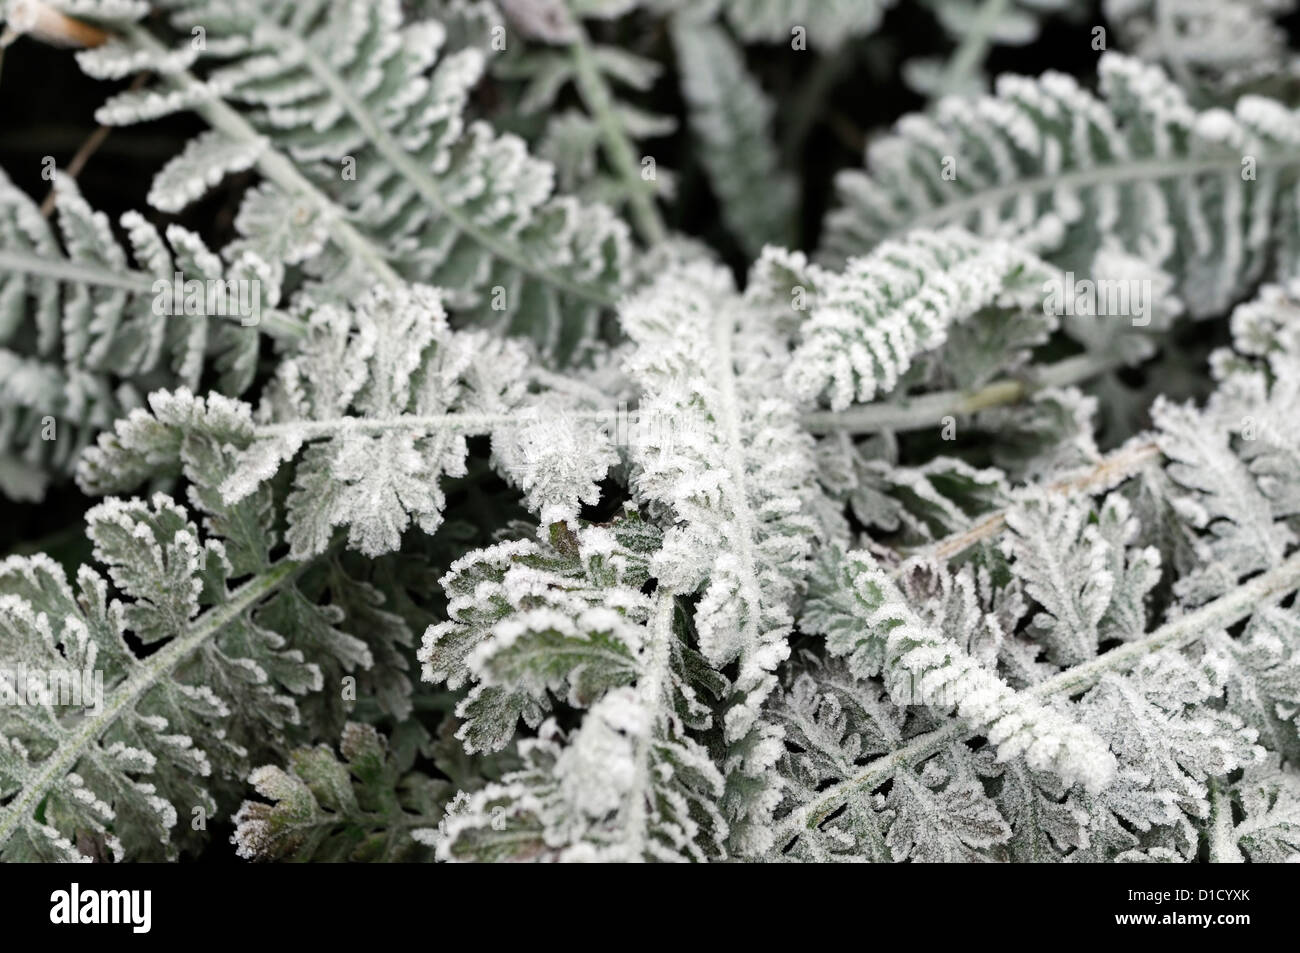 achillea millefolium moonshine silver grey foliage cover covered frost frosty ice icy coating autumn early winter - Stock Image